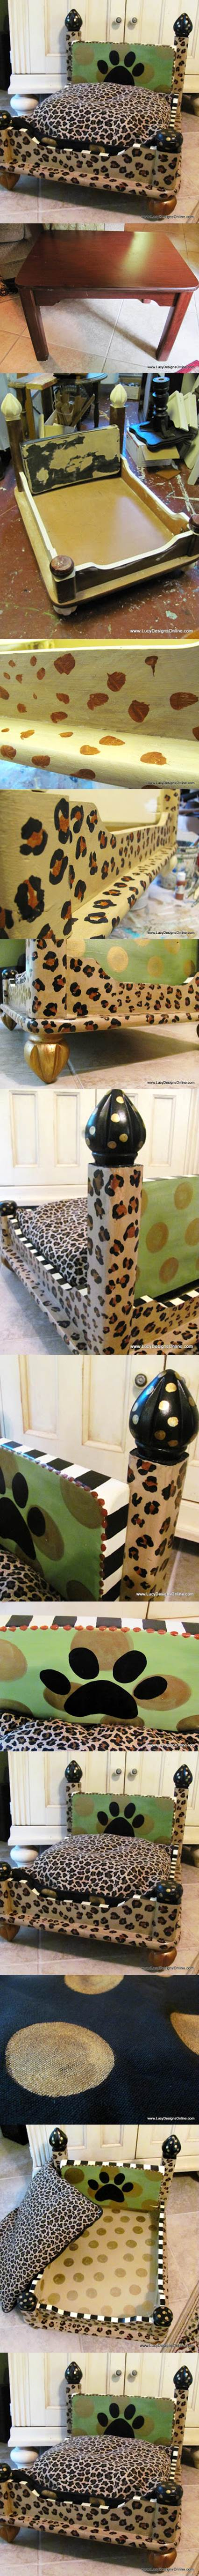 DIY Leopard Print Dog Bed from an End Table 2